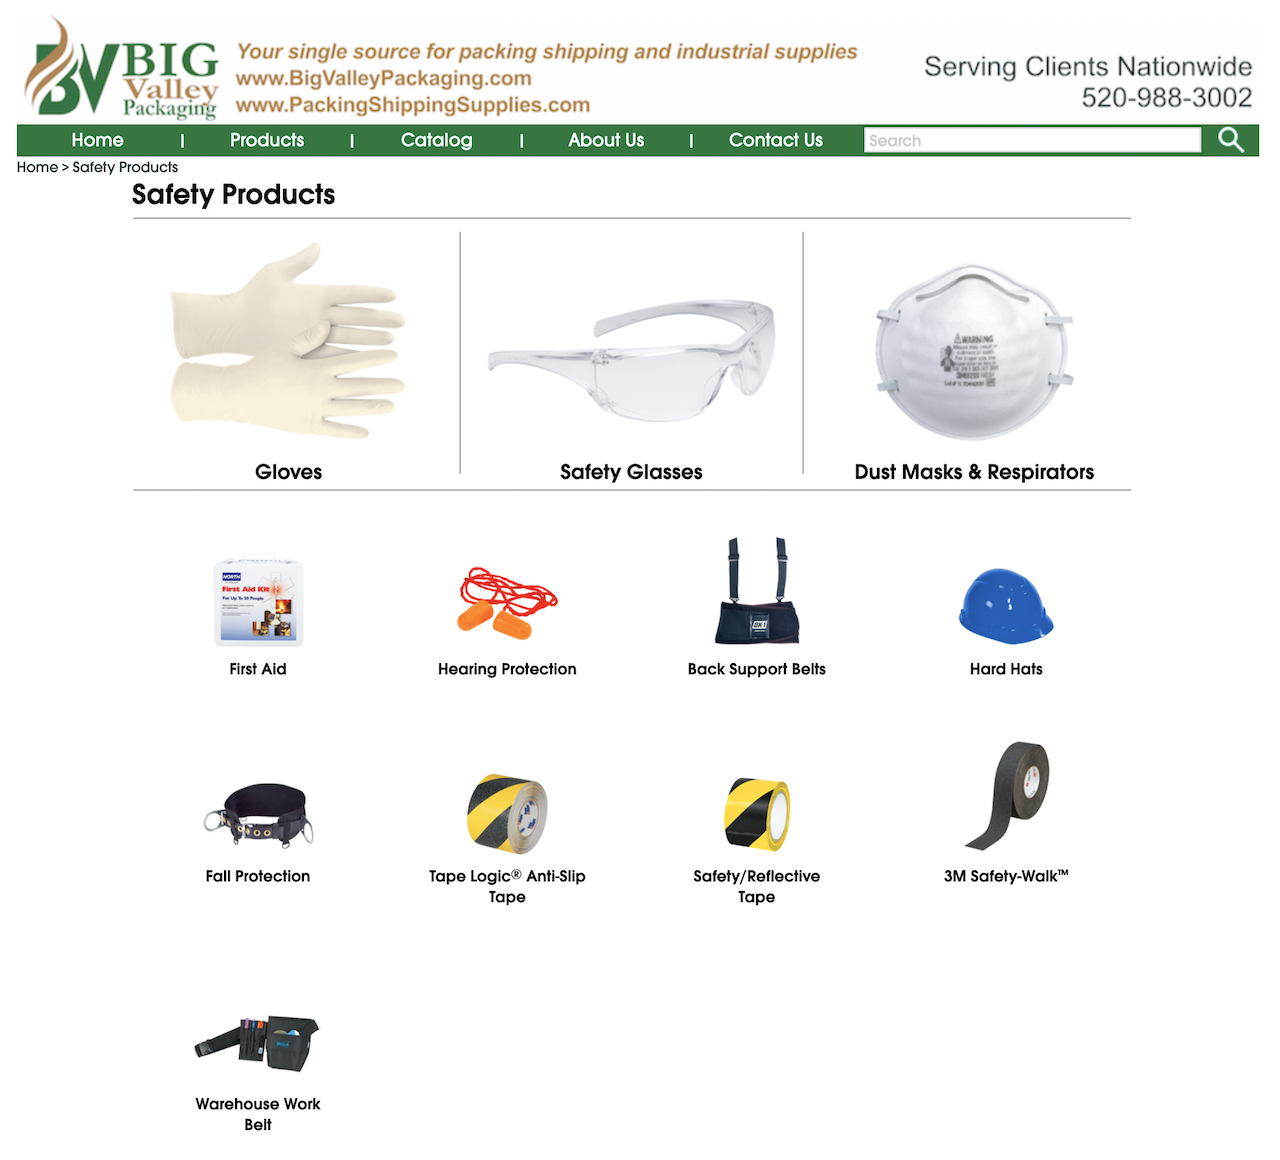 Safety Supply Products - Stocking safety supply for all your glove, safety glasses, dust mask respirators, construction work hard hats for head protection. Visit our stock warehouse online. Safety and industrial supplies. 3M respirators dust masks, 3M safety glasses goggles protective eye wear. Ear plugs for hearing ear protection, medical first aid kits, back support belts, carts dollies.